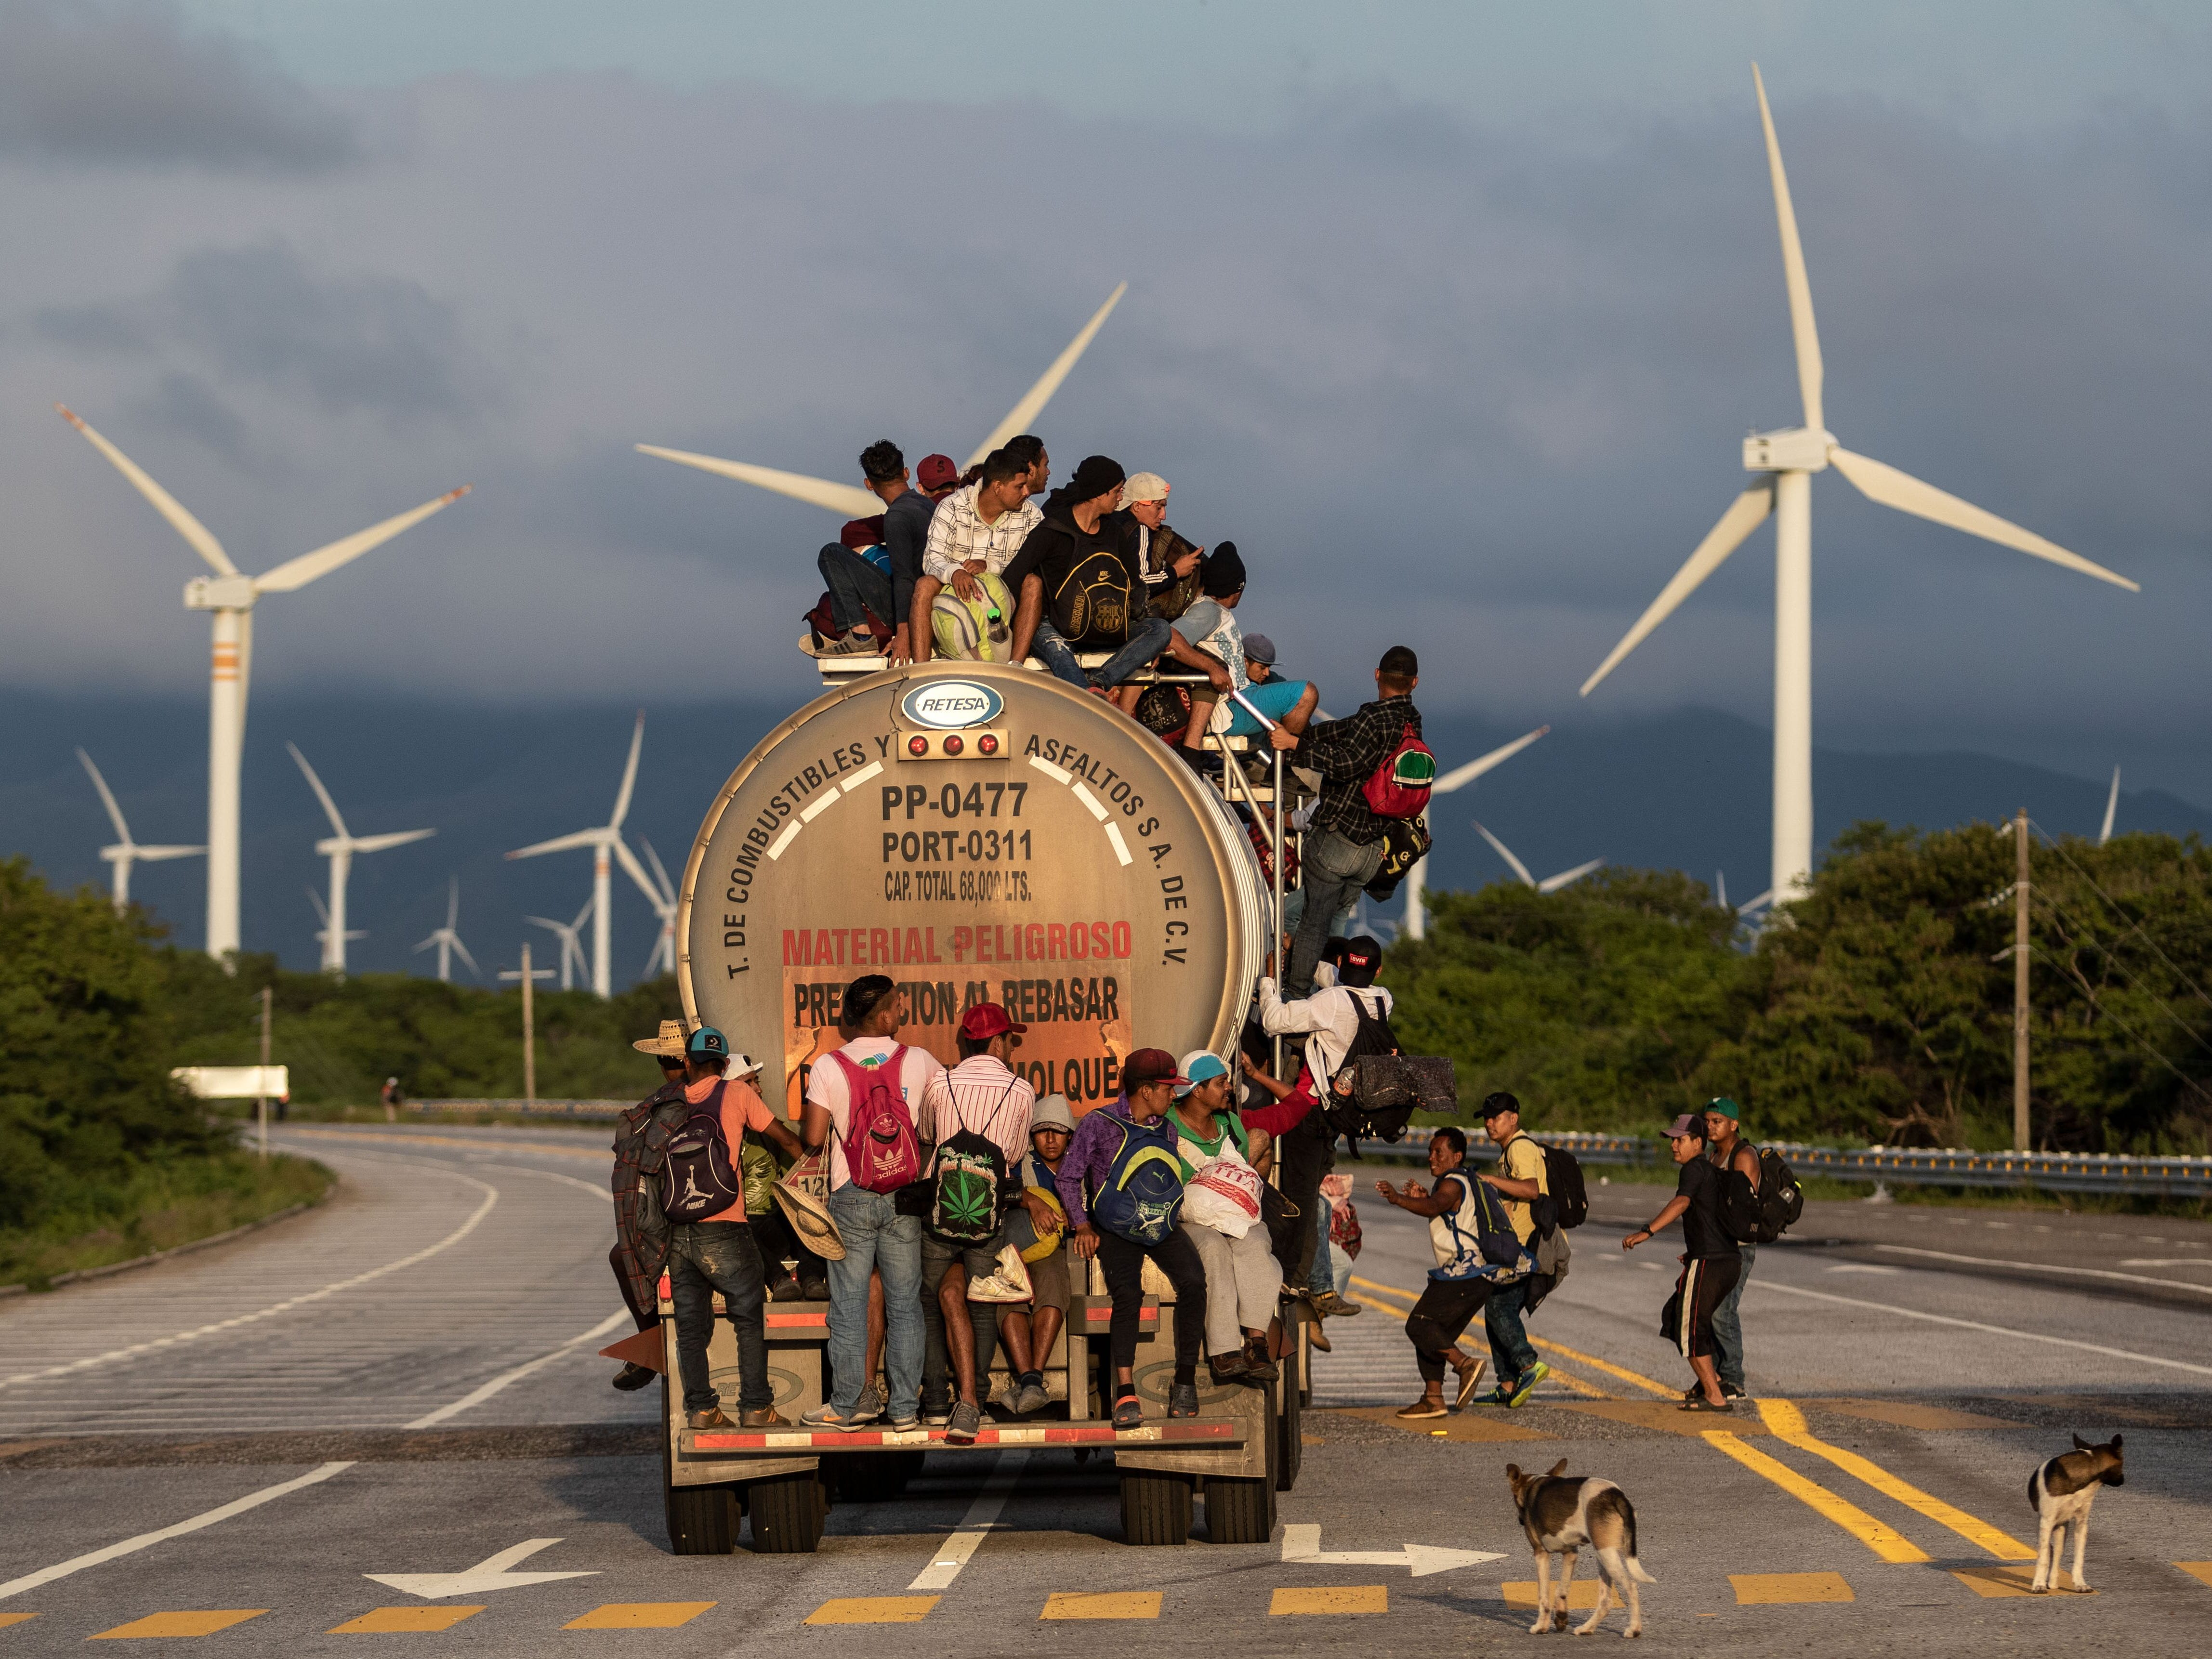 A truck carrying mostly Honduran migrants taking part in a caravan heading to the U.S. passes by a wind farm on their way from Santiago Niltepec to Juchitan, near the town of La Blanca in Oaxaca State, Mexico, on Oct. 30, 2018. The Pentagon is deploying 5,200 active-duty troops to beef up security along the U.S.-Mexico border, officials announced Monday, in a bid to prevent a caravan of Central American migrants from illegally crossing the frontier.